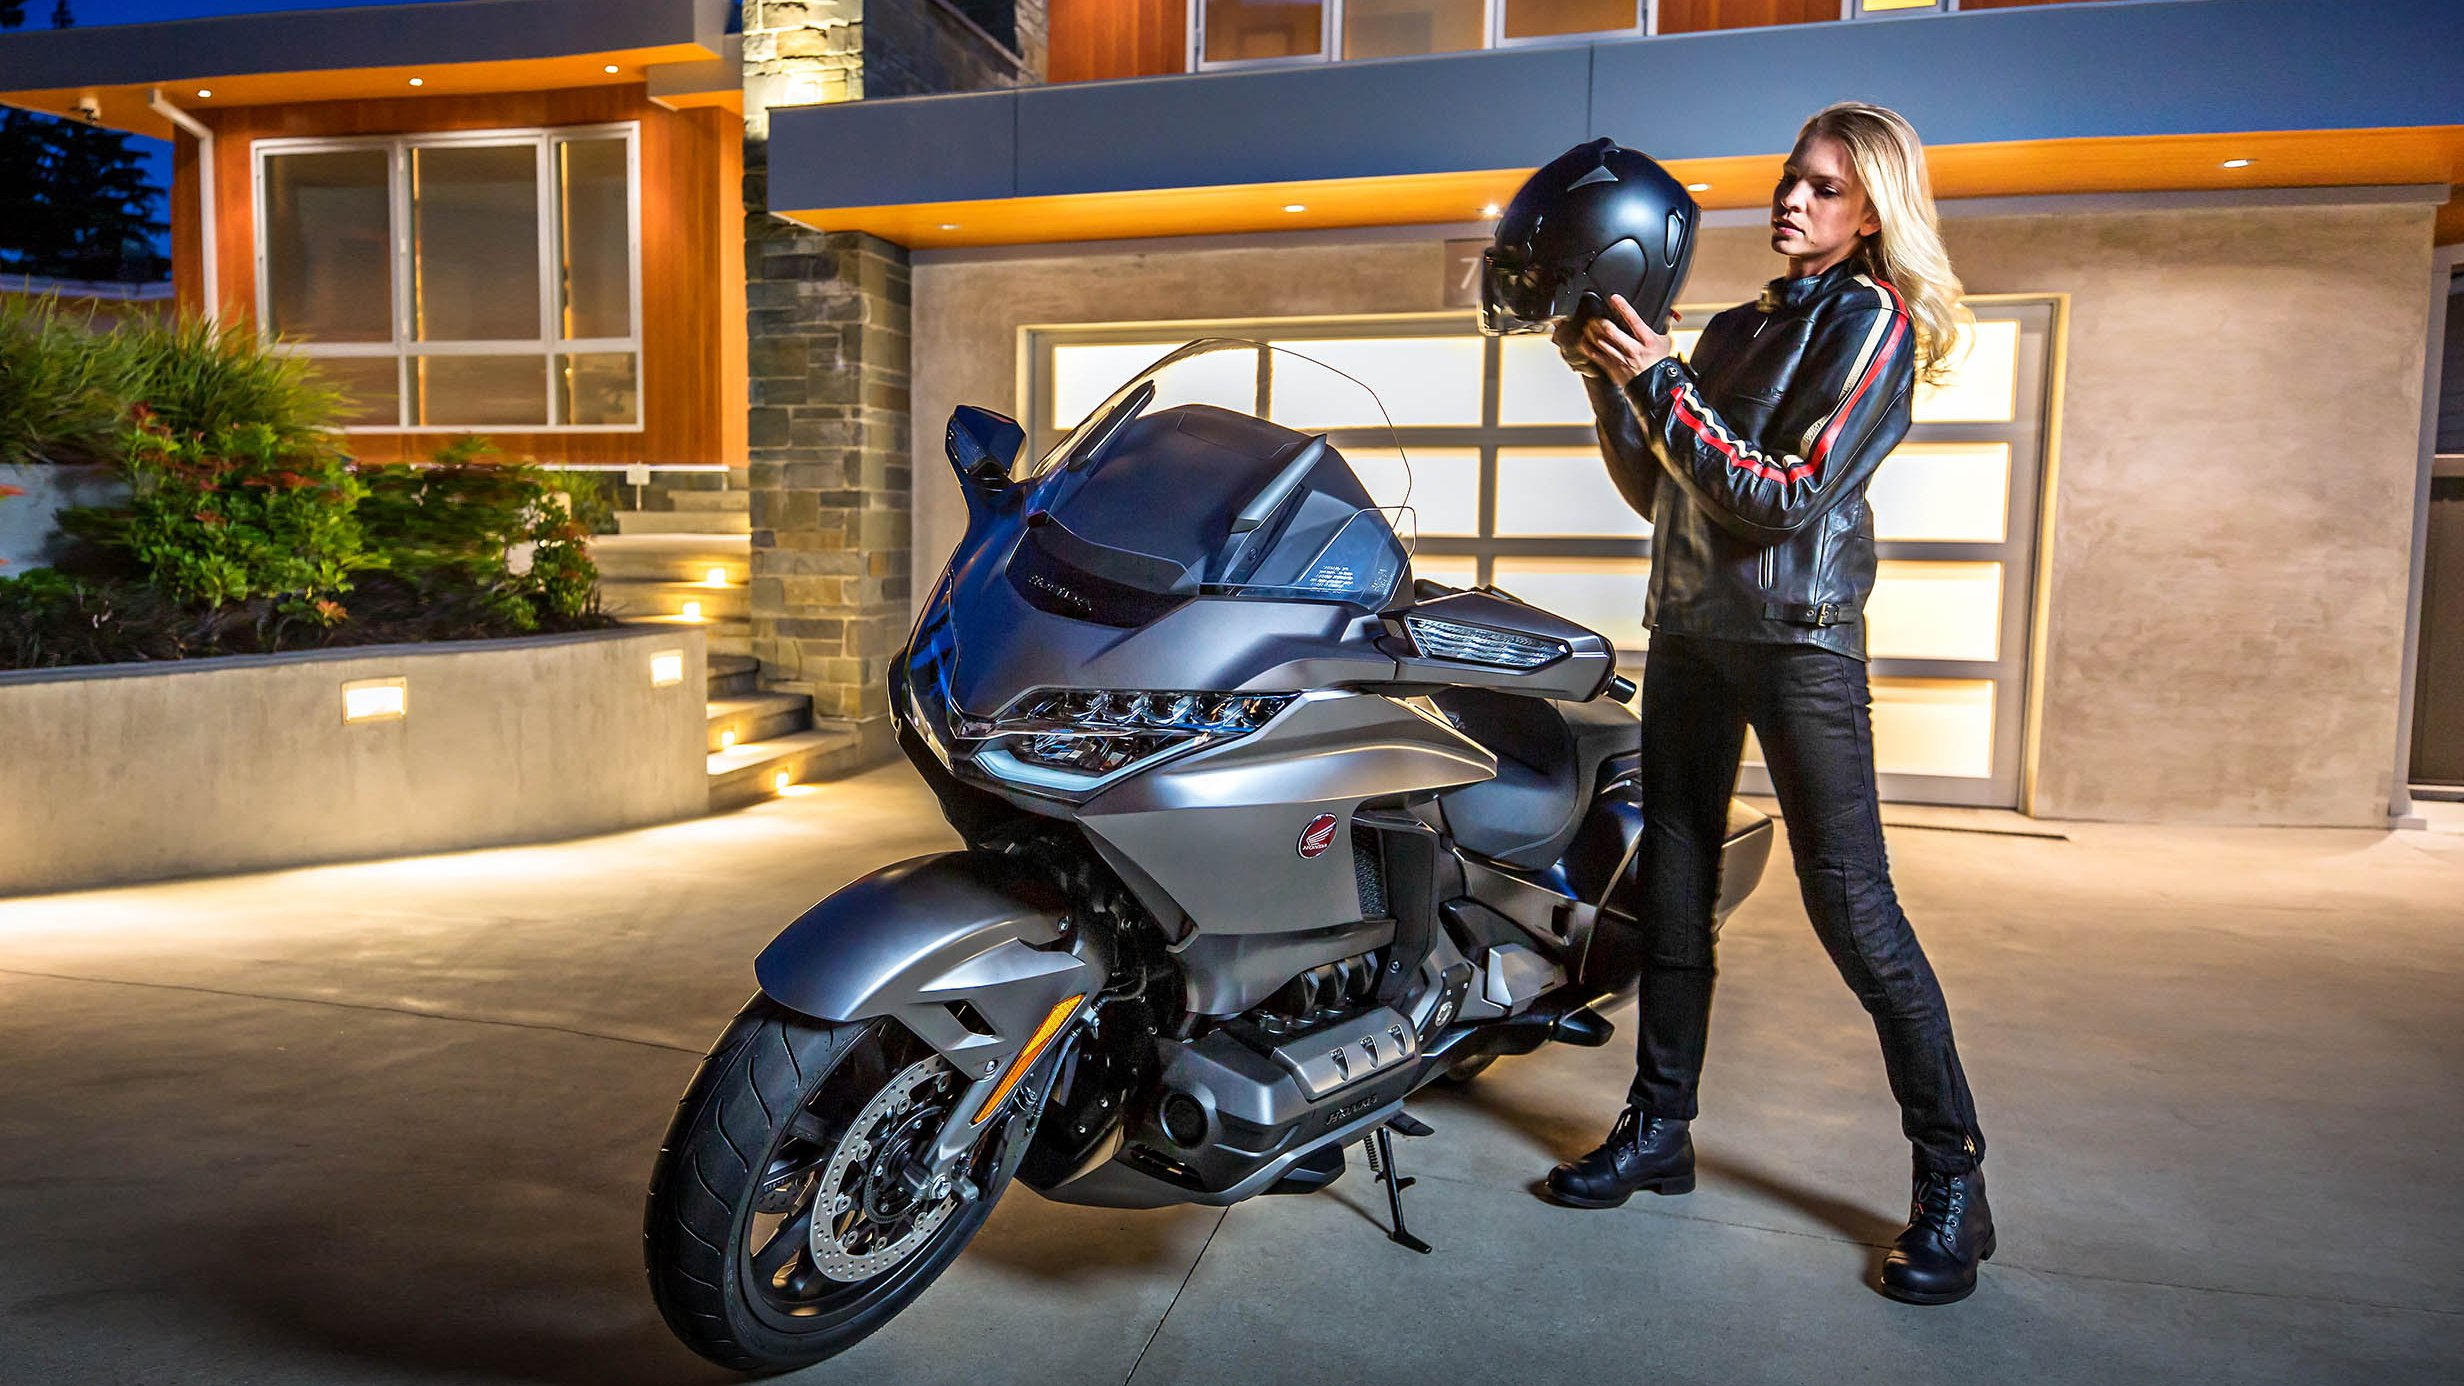 A woman rider with the 2018 Honda Gold Wing